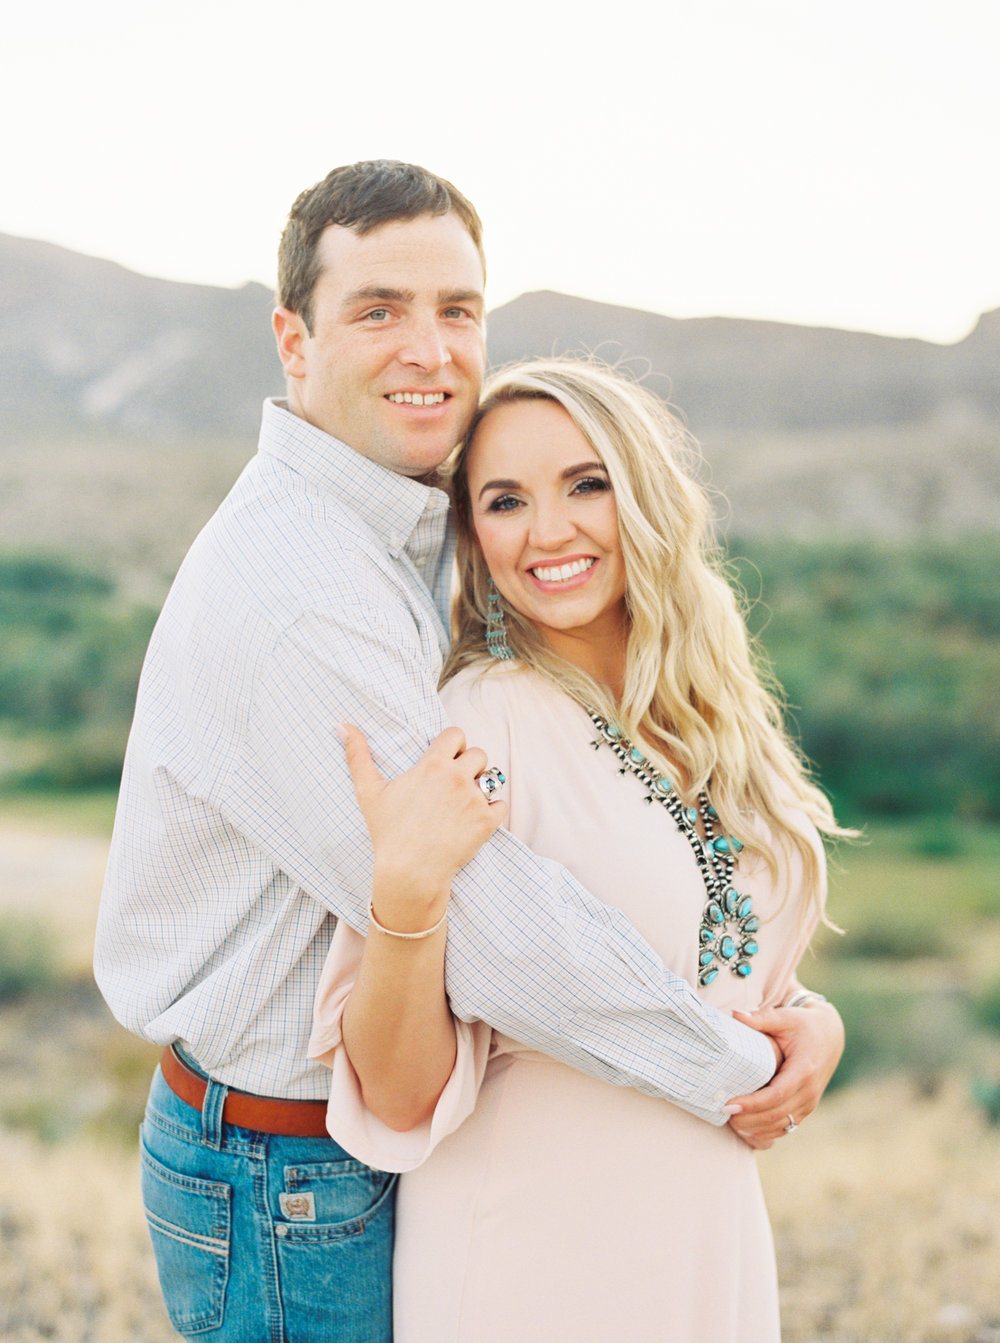 Engagement Session Outfits-190.jpg